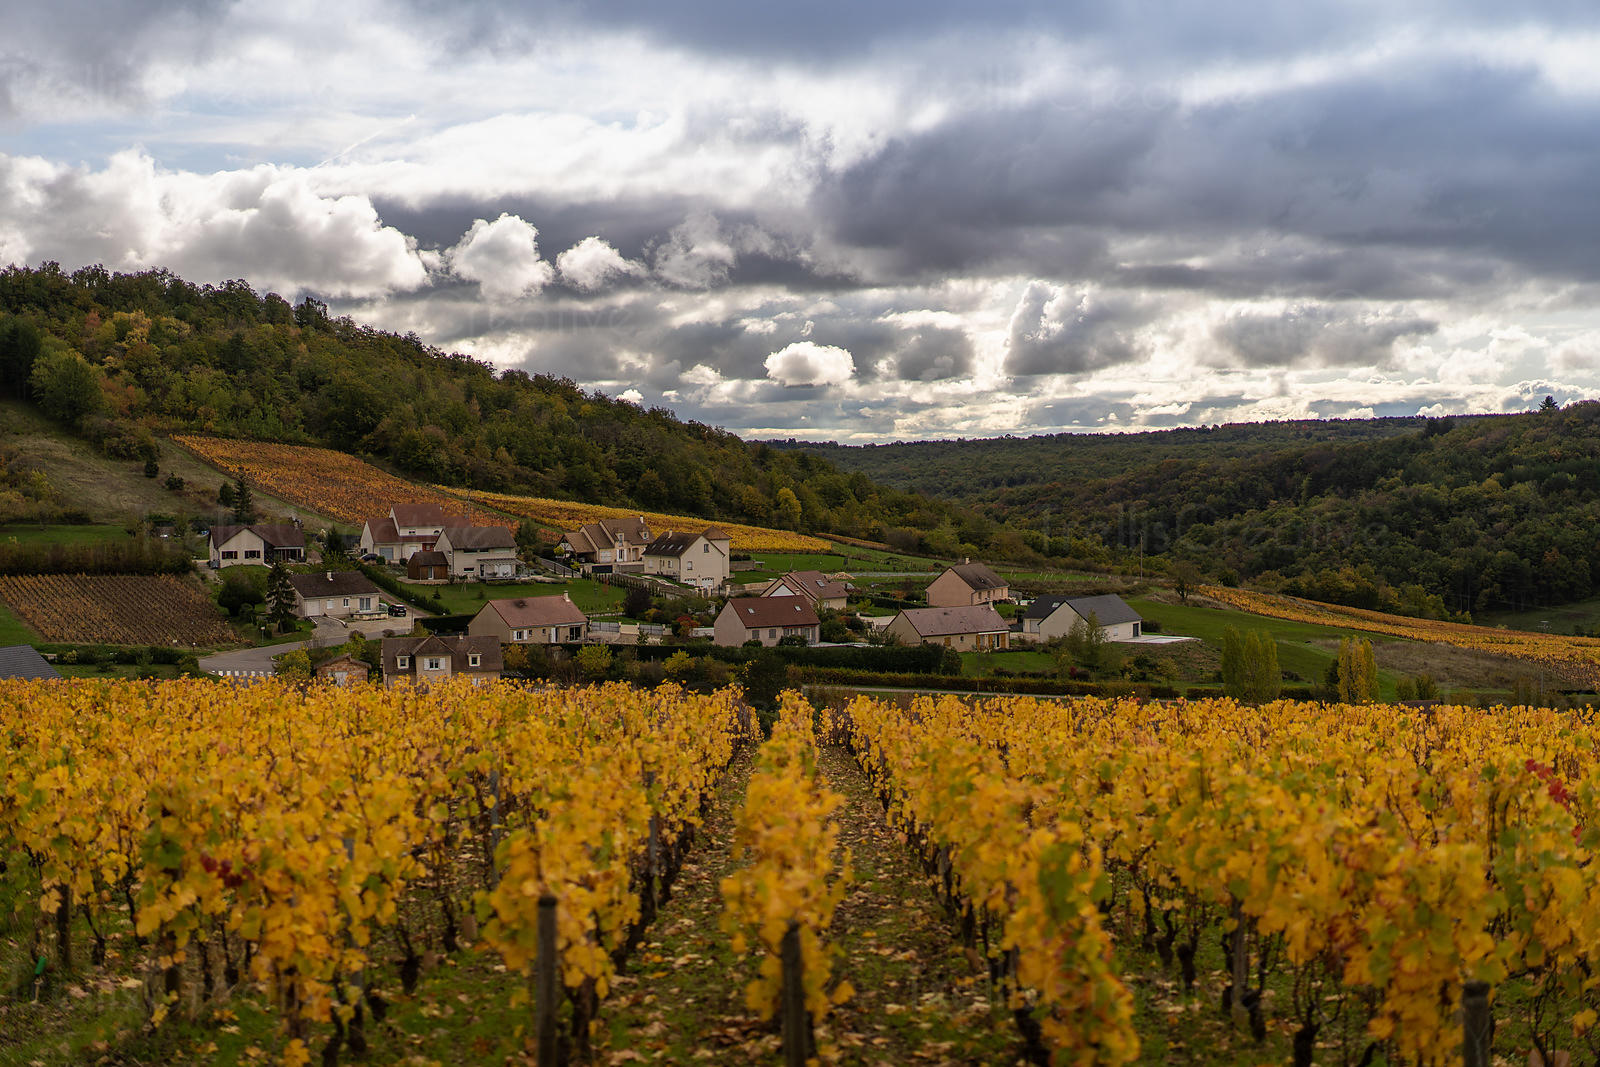 Golden leaves on the grapevines after the grapes have been harvested in Burgundy, France